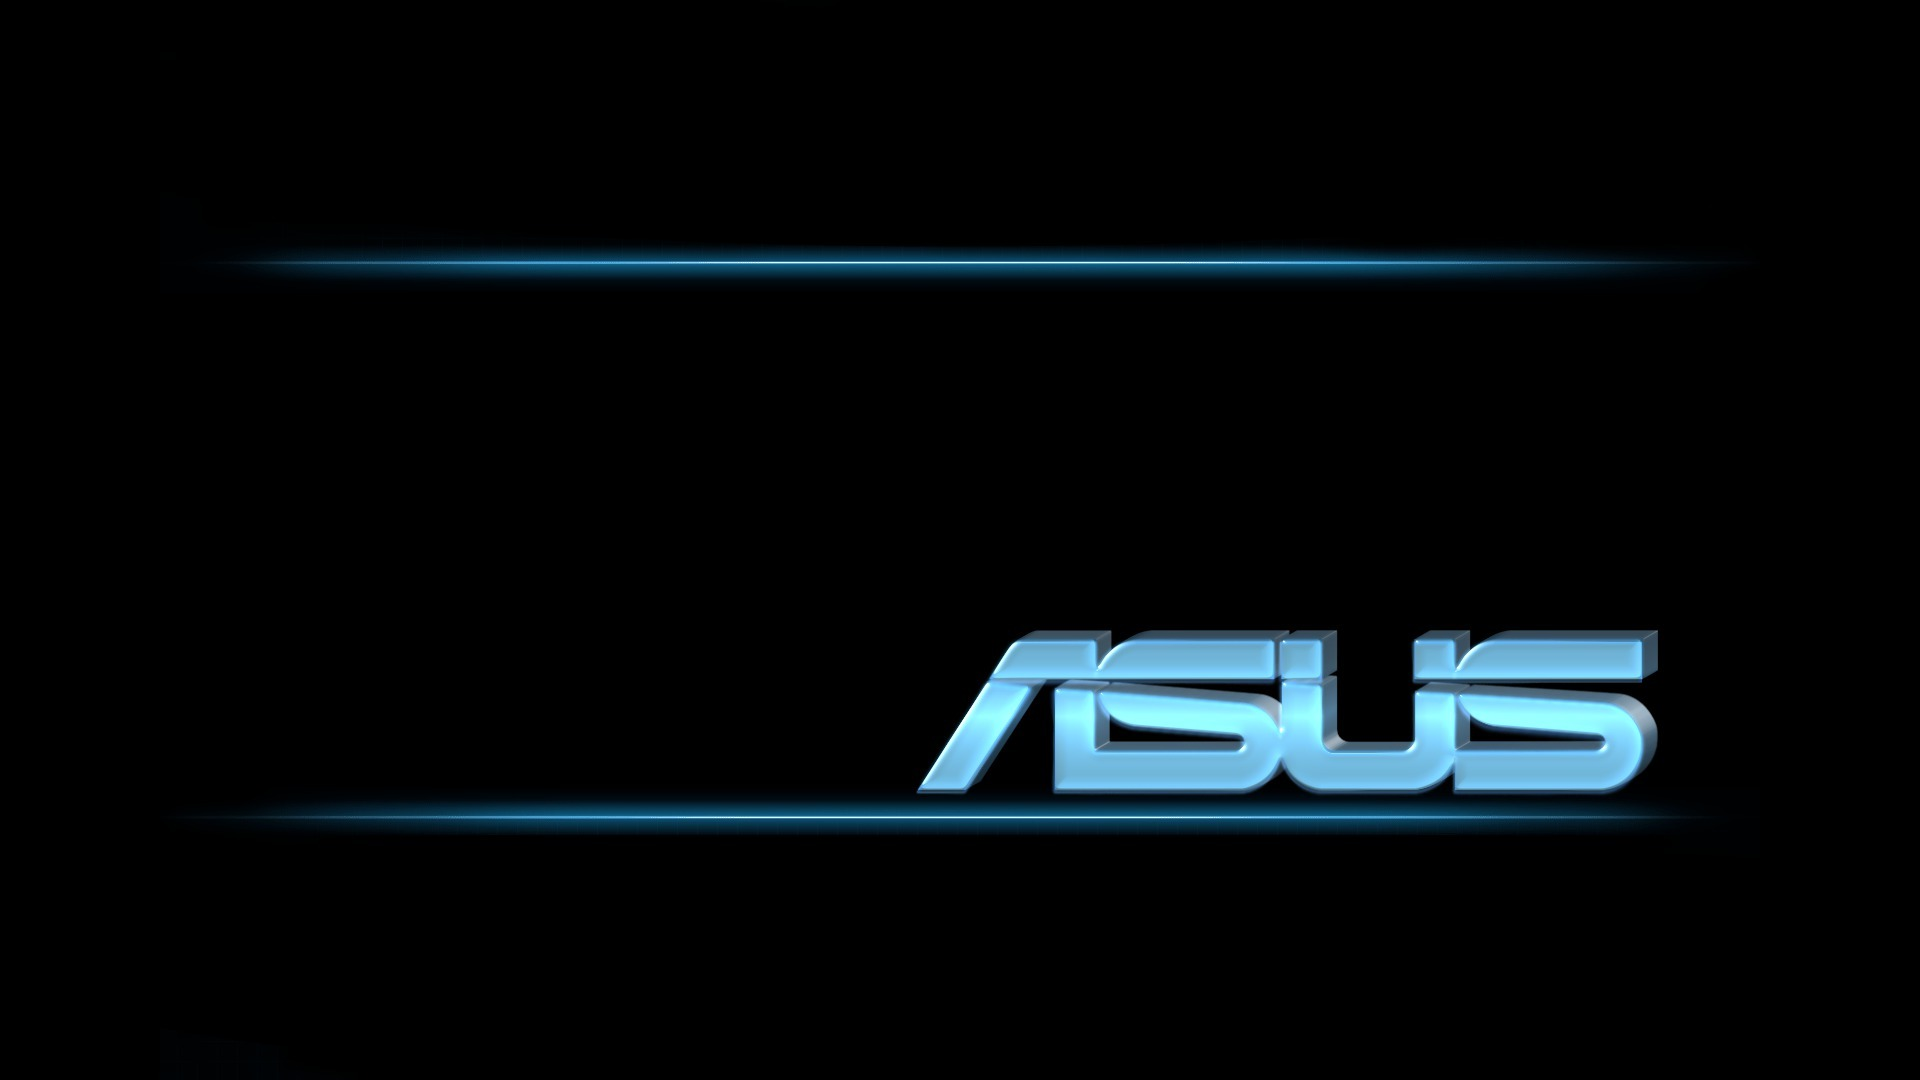 Asus badge Wallpaper